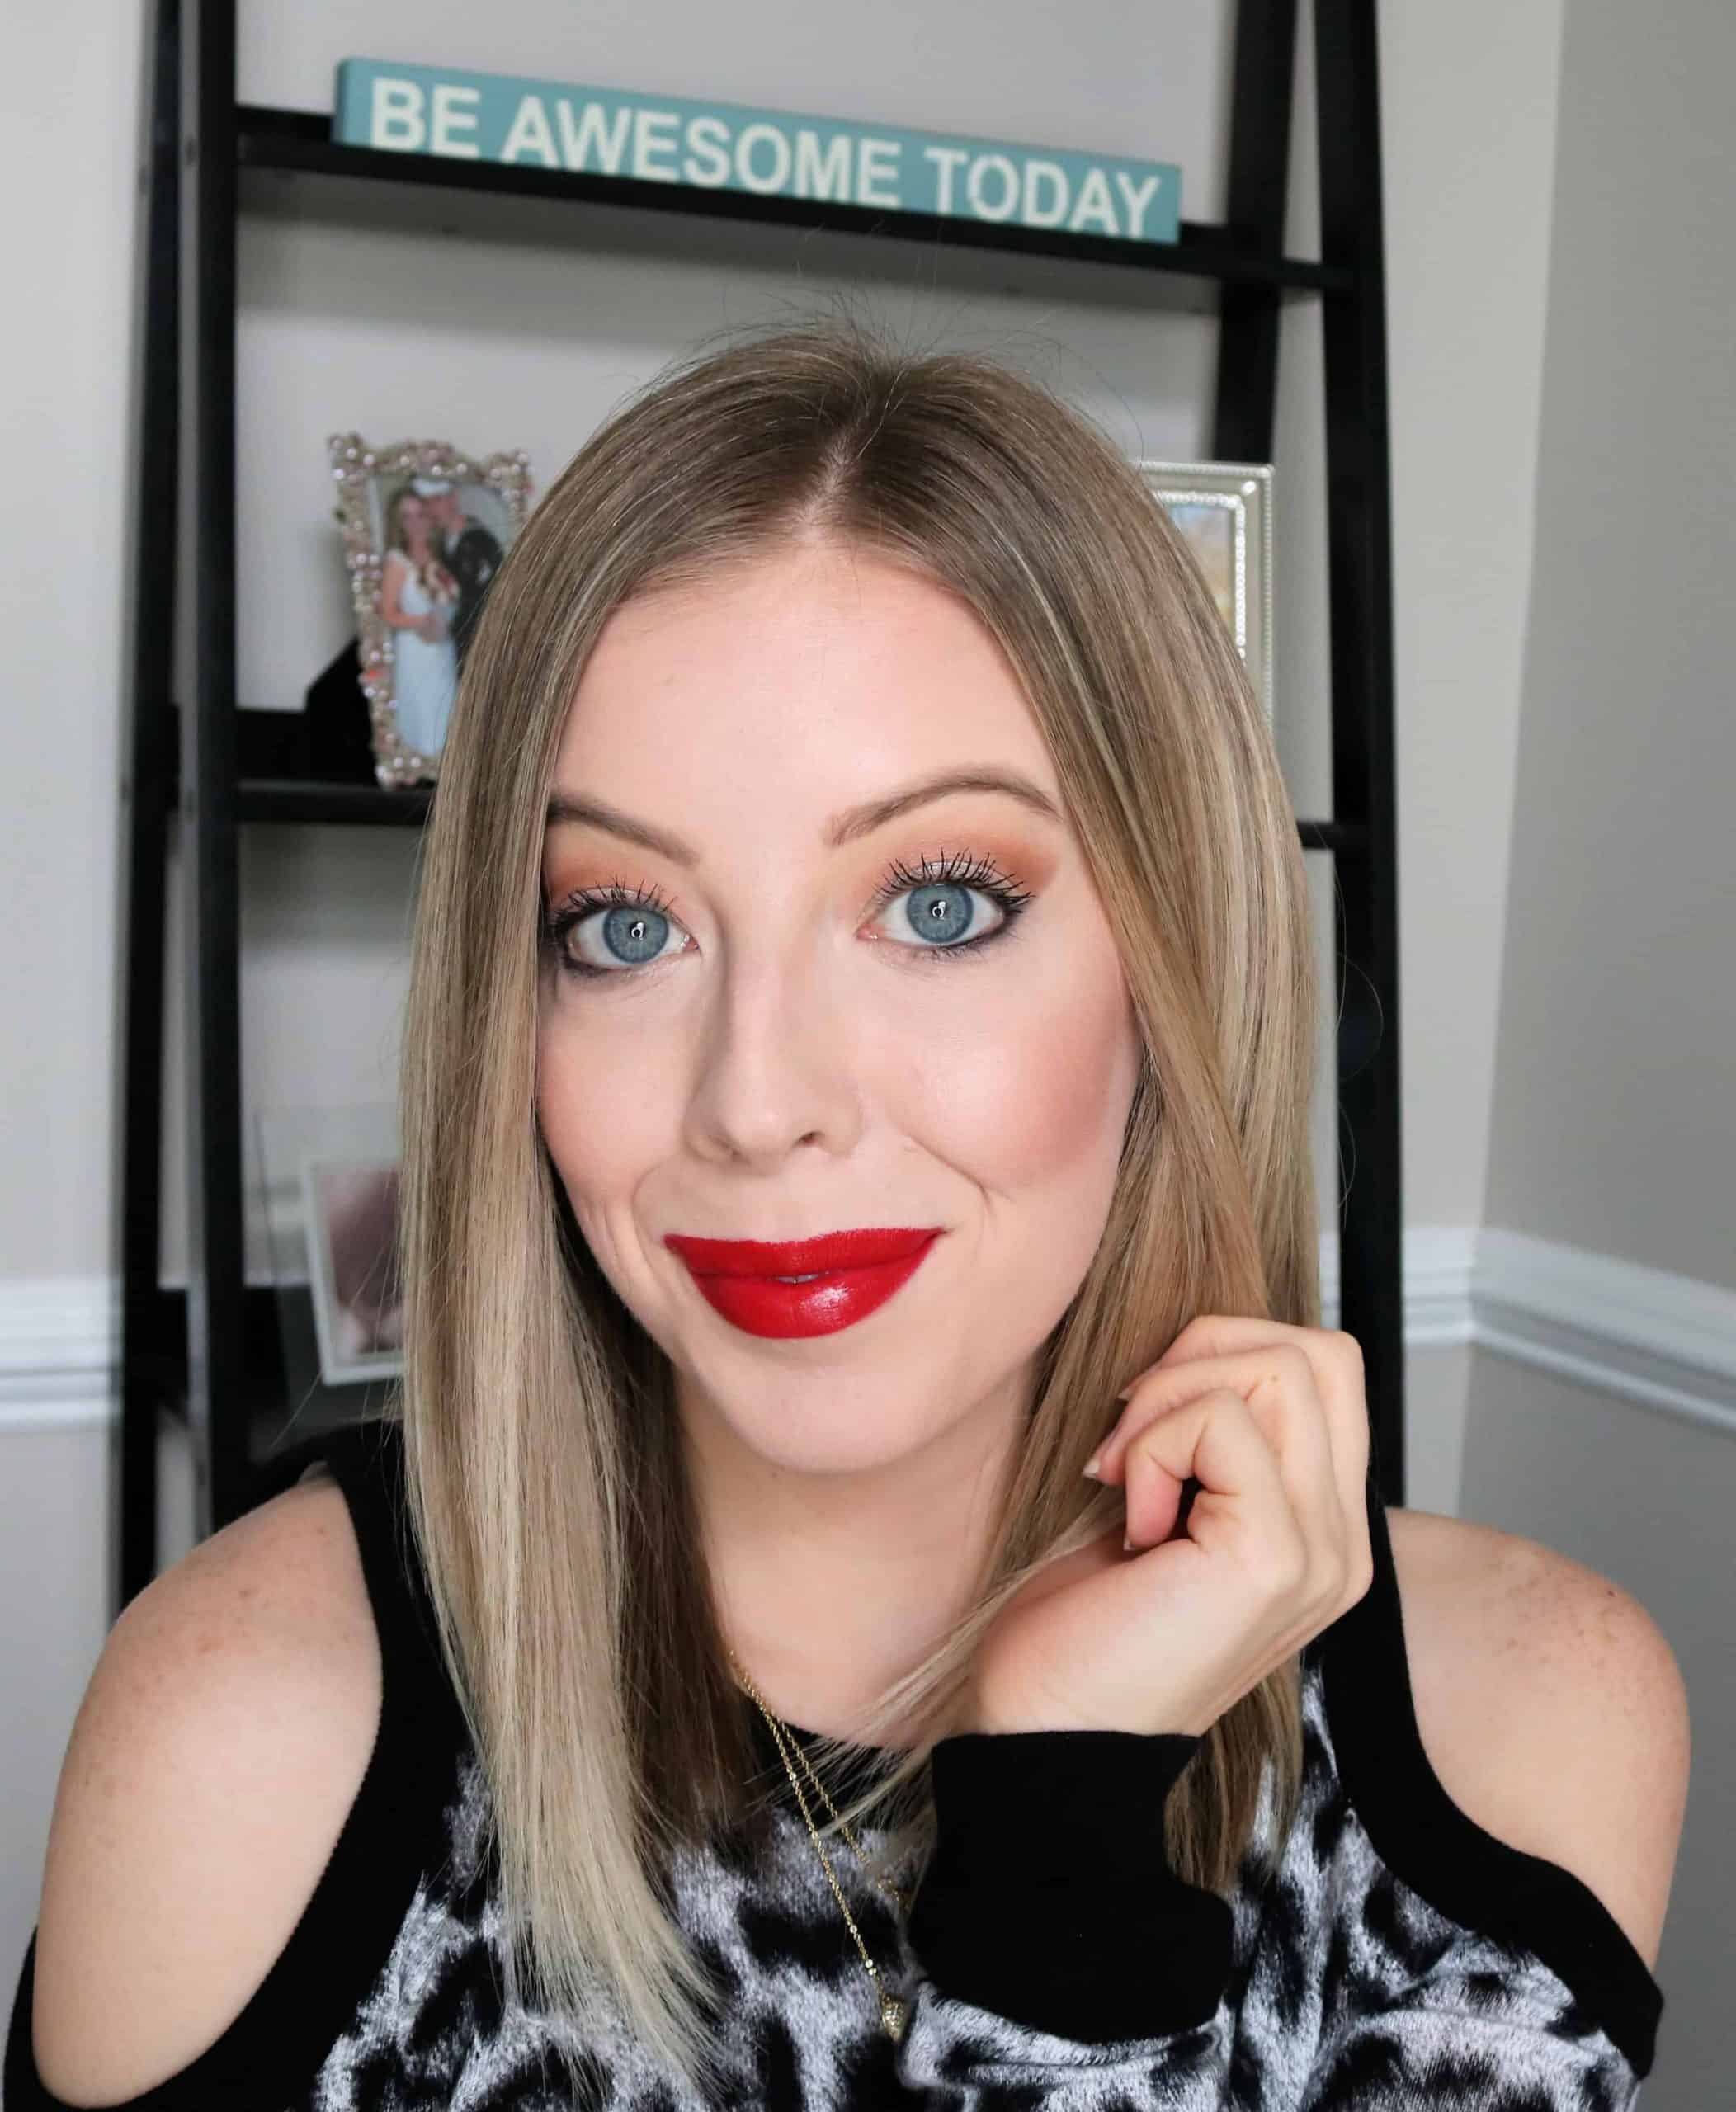 Love red lipstick? Check out the 5 Best Red Lipsticks for Fair Skin with both swatches and recommendations of affordable drugstore lipsticks and high end lipsticks that look beautiful on pale and fair skin tones. #redlipstick #bestlipstick #drugstoremakeup #highendmakeup